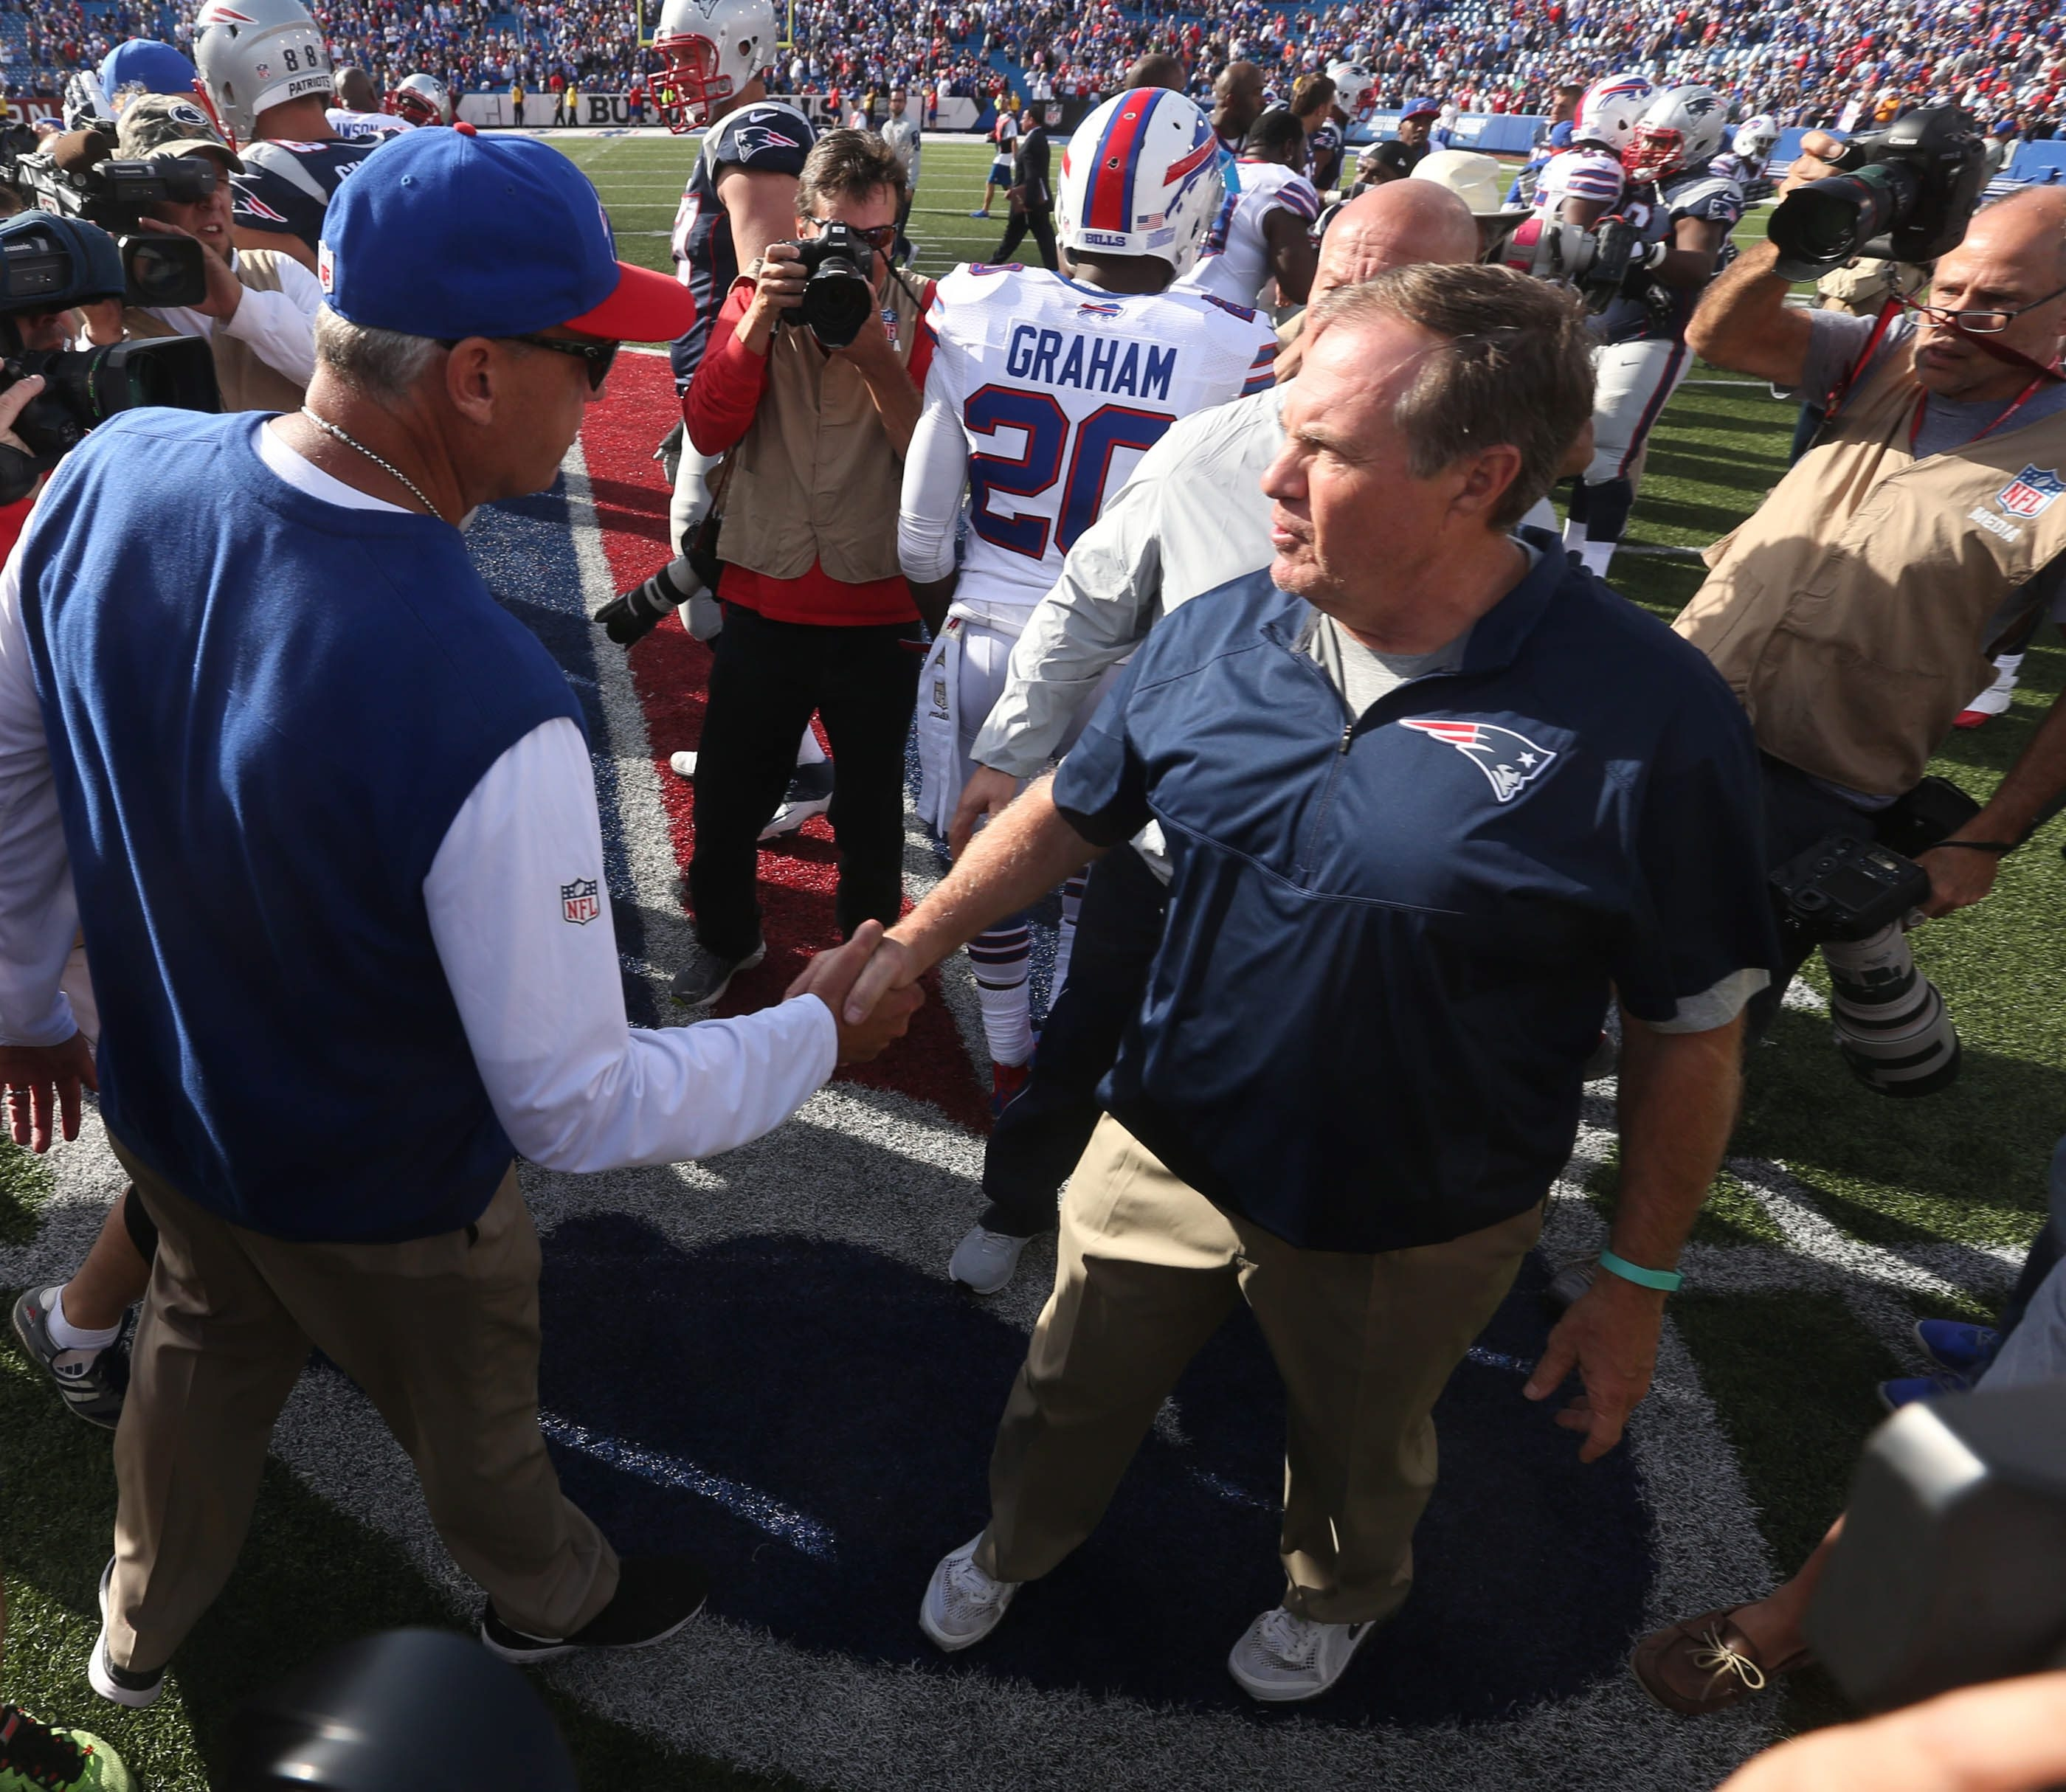 Longtime coaching rivals Rex Ryan and Bill Belichick shake hands at the end of last year's game in Orchard Park. Belichick has an 11-4 record against Ryan.